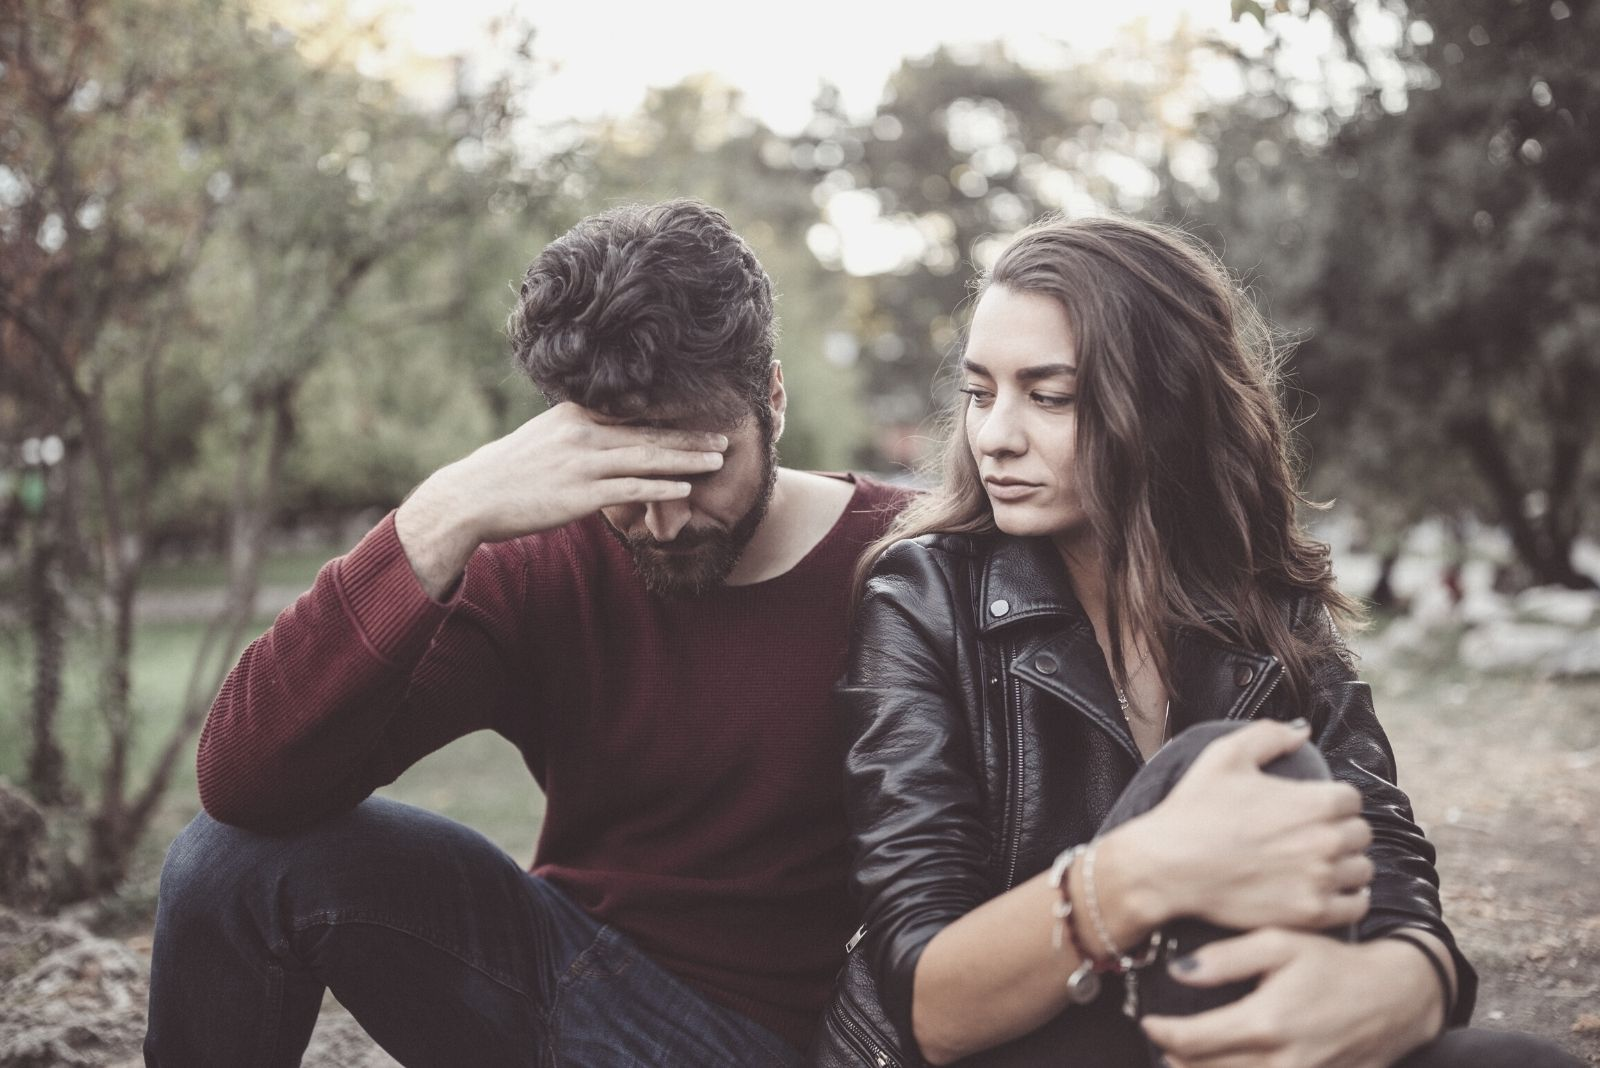 couple breaking up in the park feeling upset